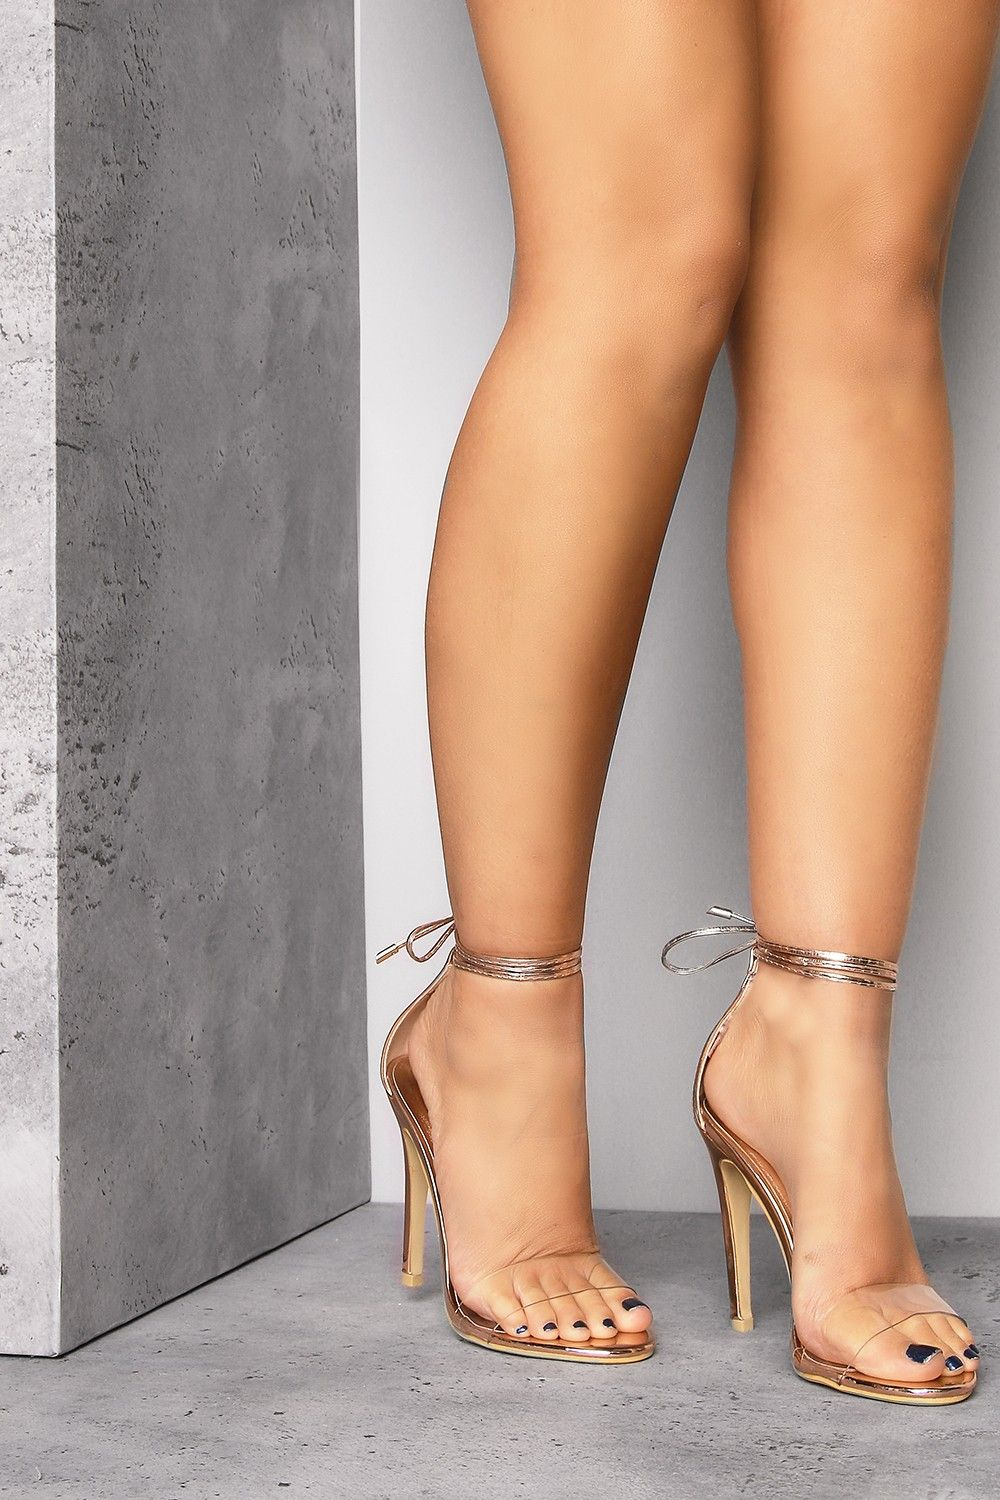 56c7aa5470d Clear The Way Perspex Strap Wrap Around Heels Rose Gold - Party And  Bullsh t